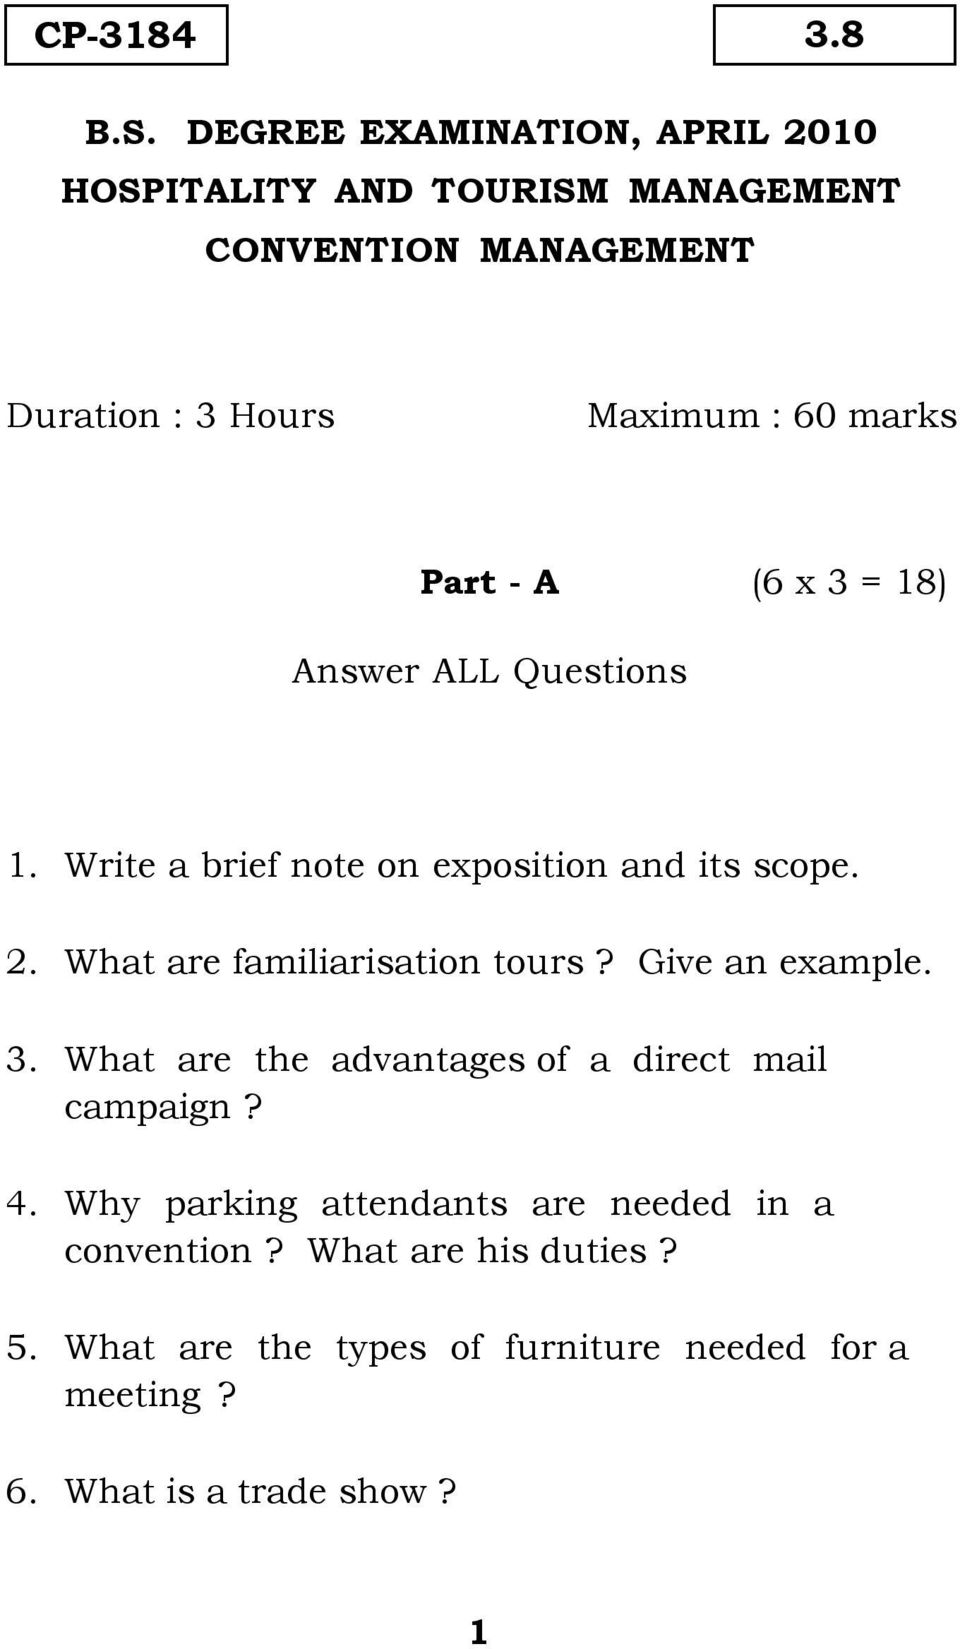 Part - A (6 x 3 = 18) Answer ALL Questions 1. Write a brief note on exposition and its scope. 2. What are familiarisation tours?